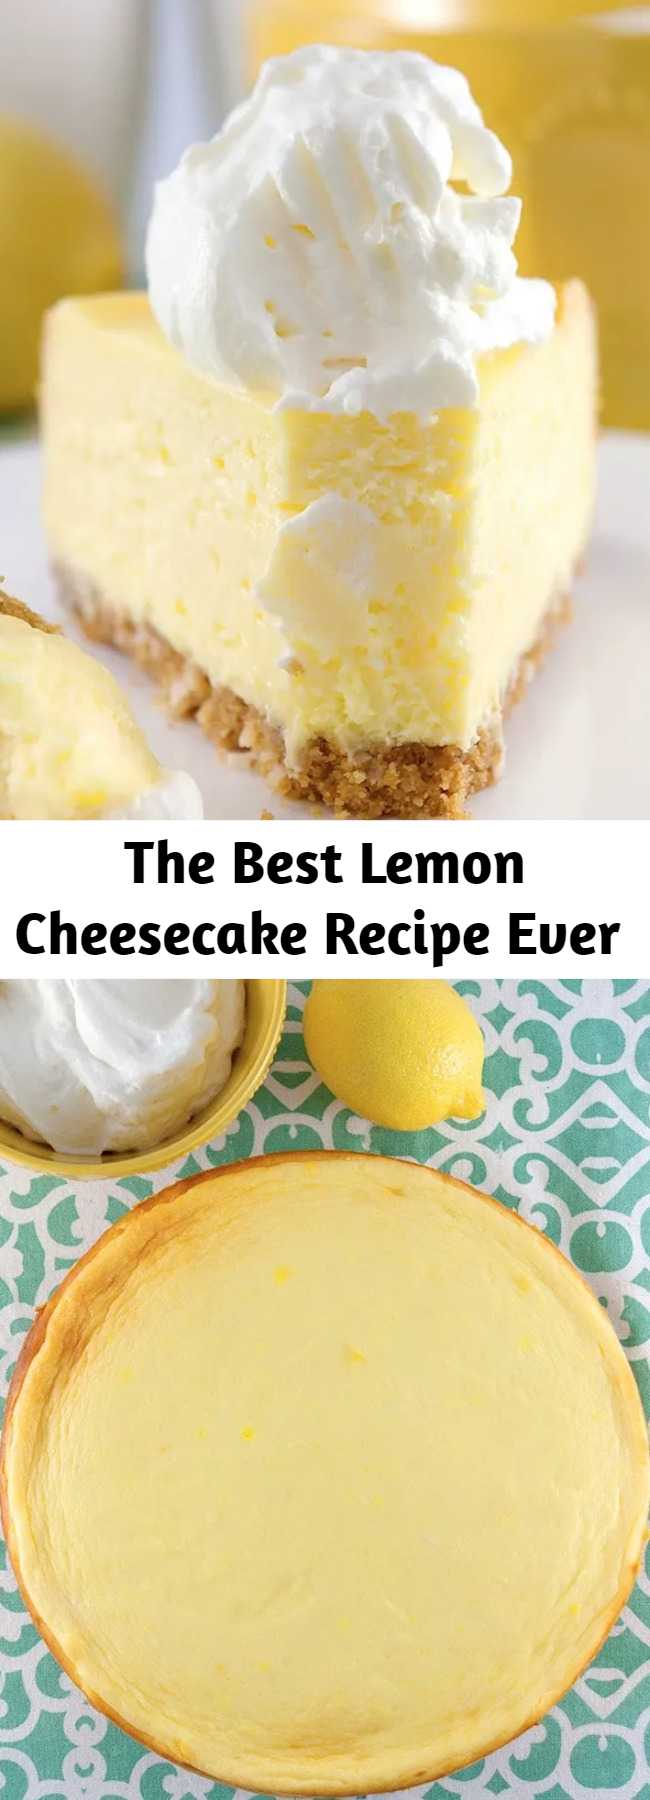 The Best Lemon Cheesecake Recipe Ever - The best lemon cheesecake ever. Exquisitely light and lemony. Perfectly sweet and tangy. Coconut cookie crust. Lemony whipped cream. This is it. The perfect lemon cheesecake.